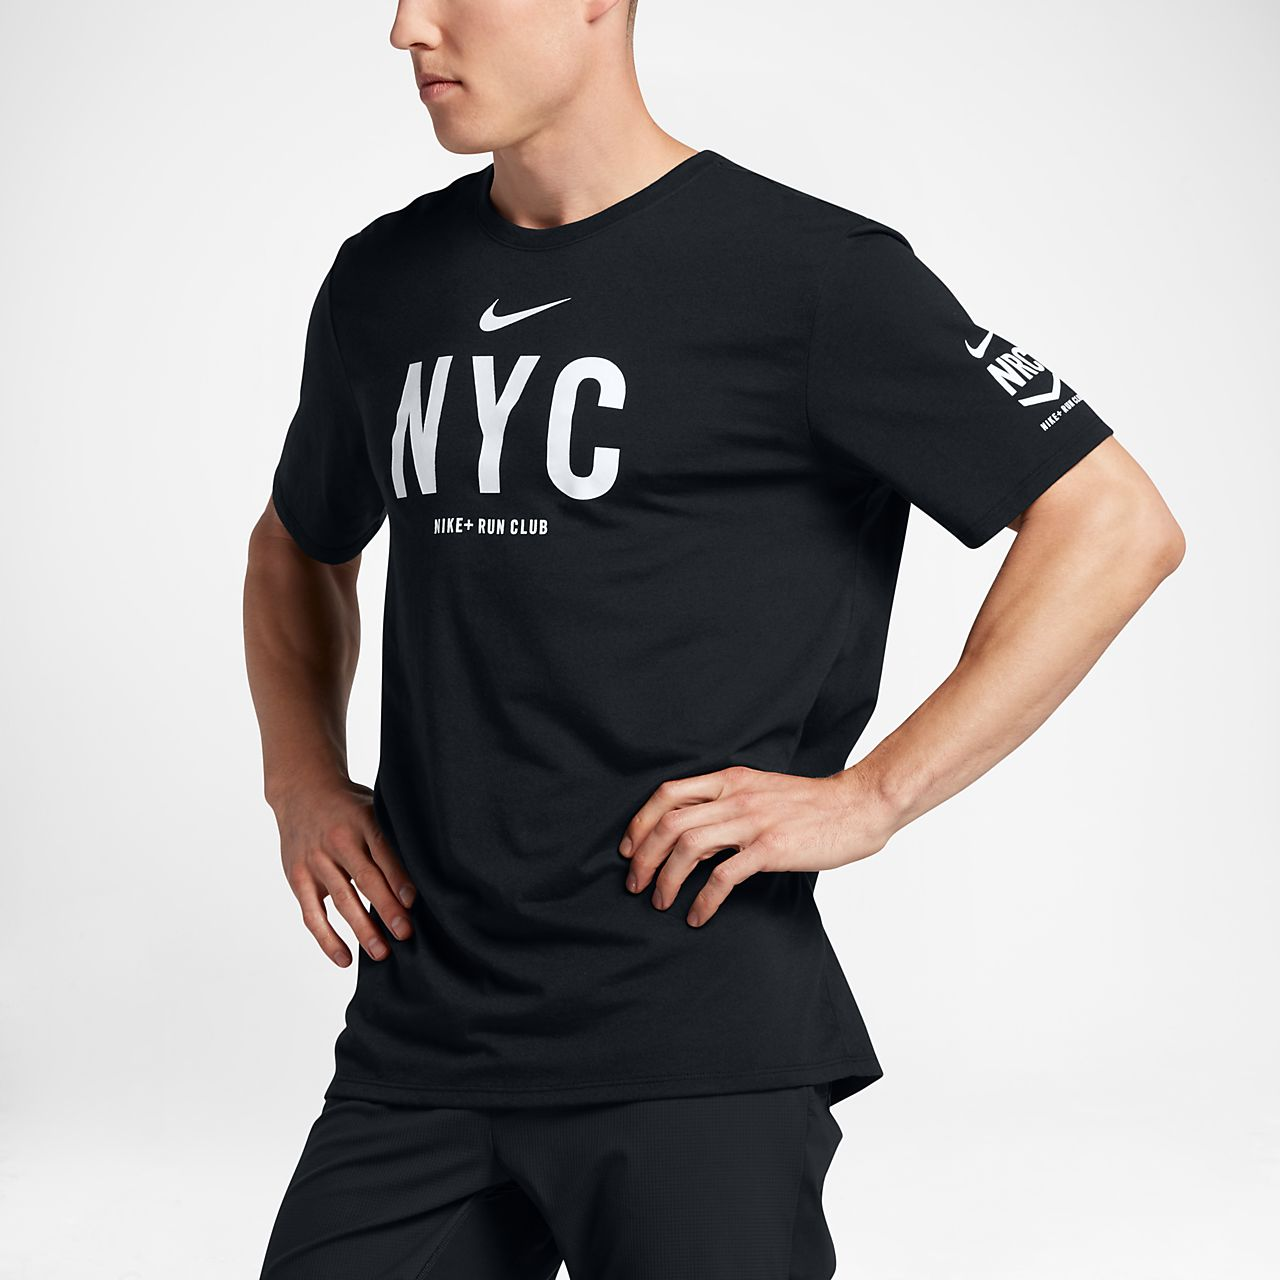 Nike dri fit run club new york men 39 s t shirt for Tahari t shirt mens